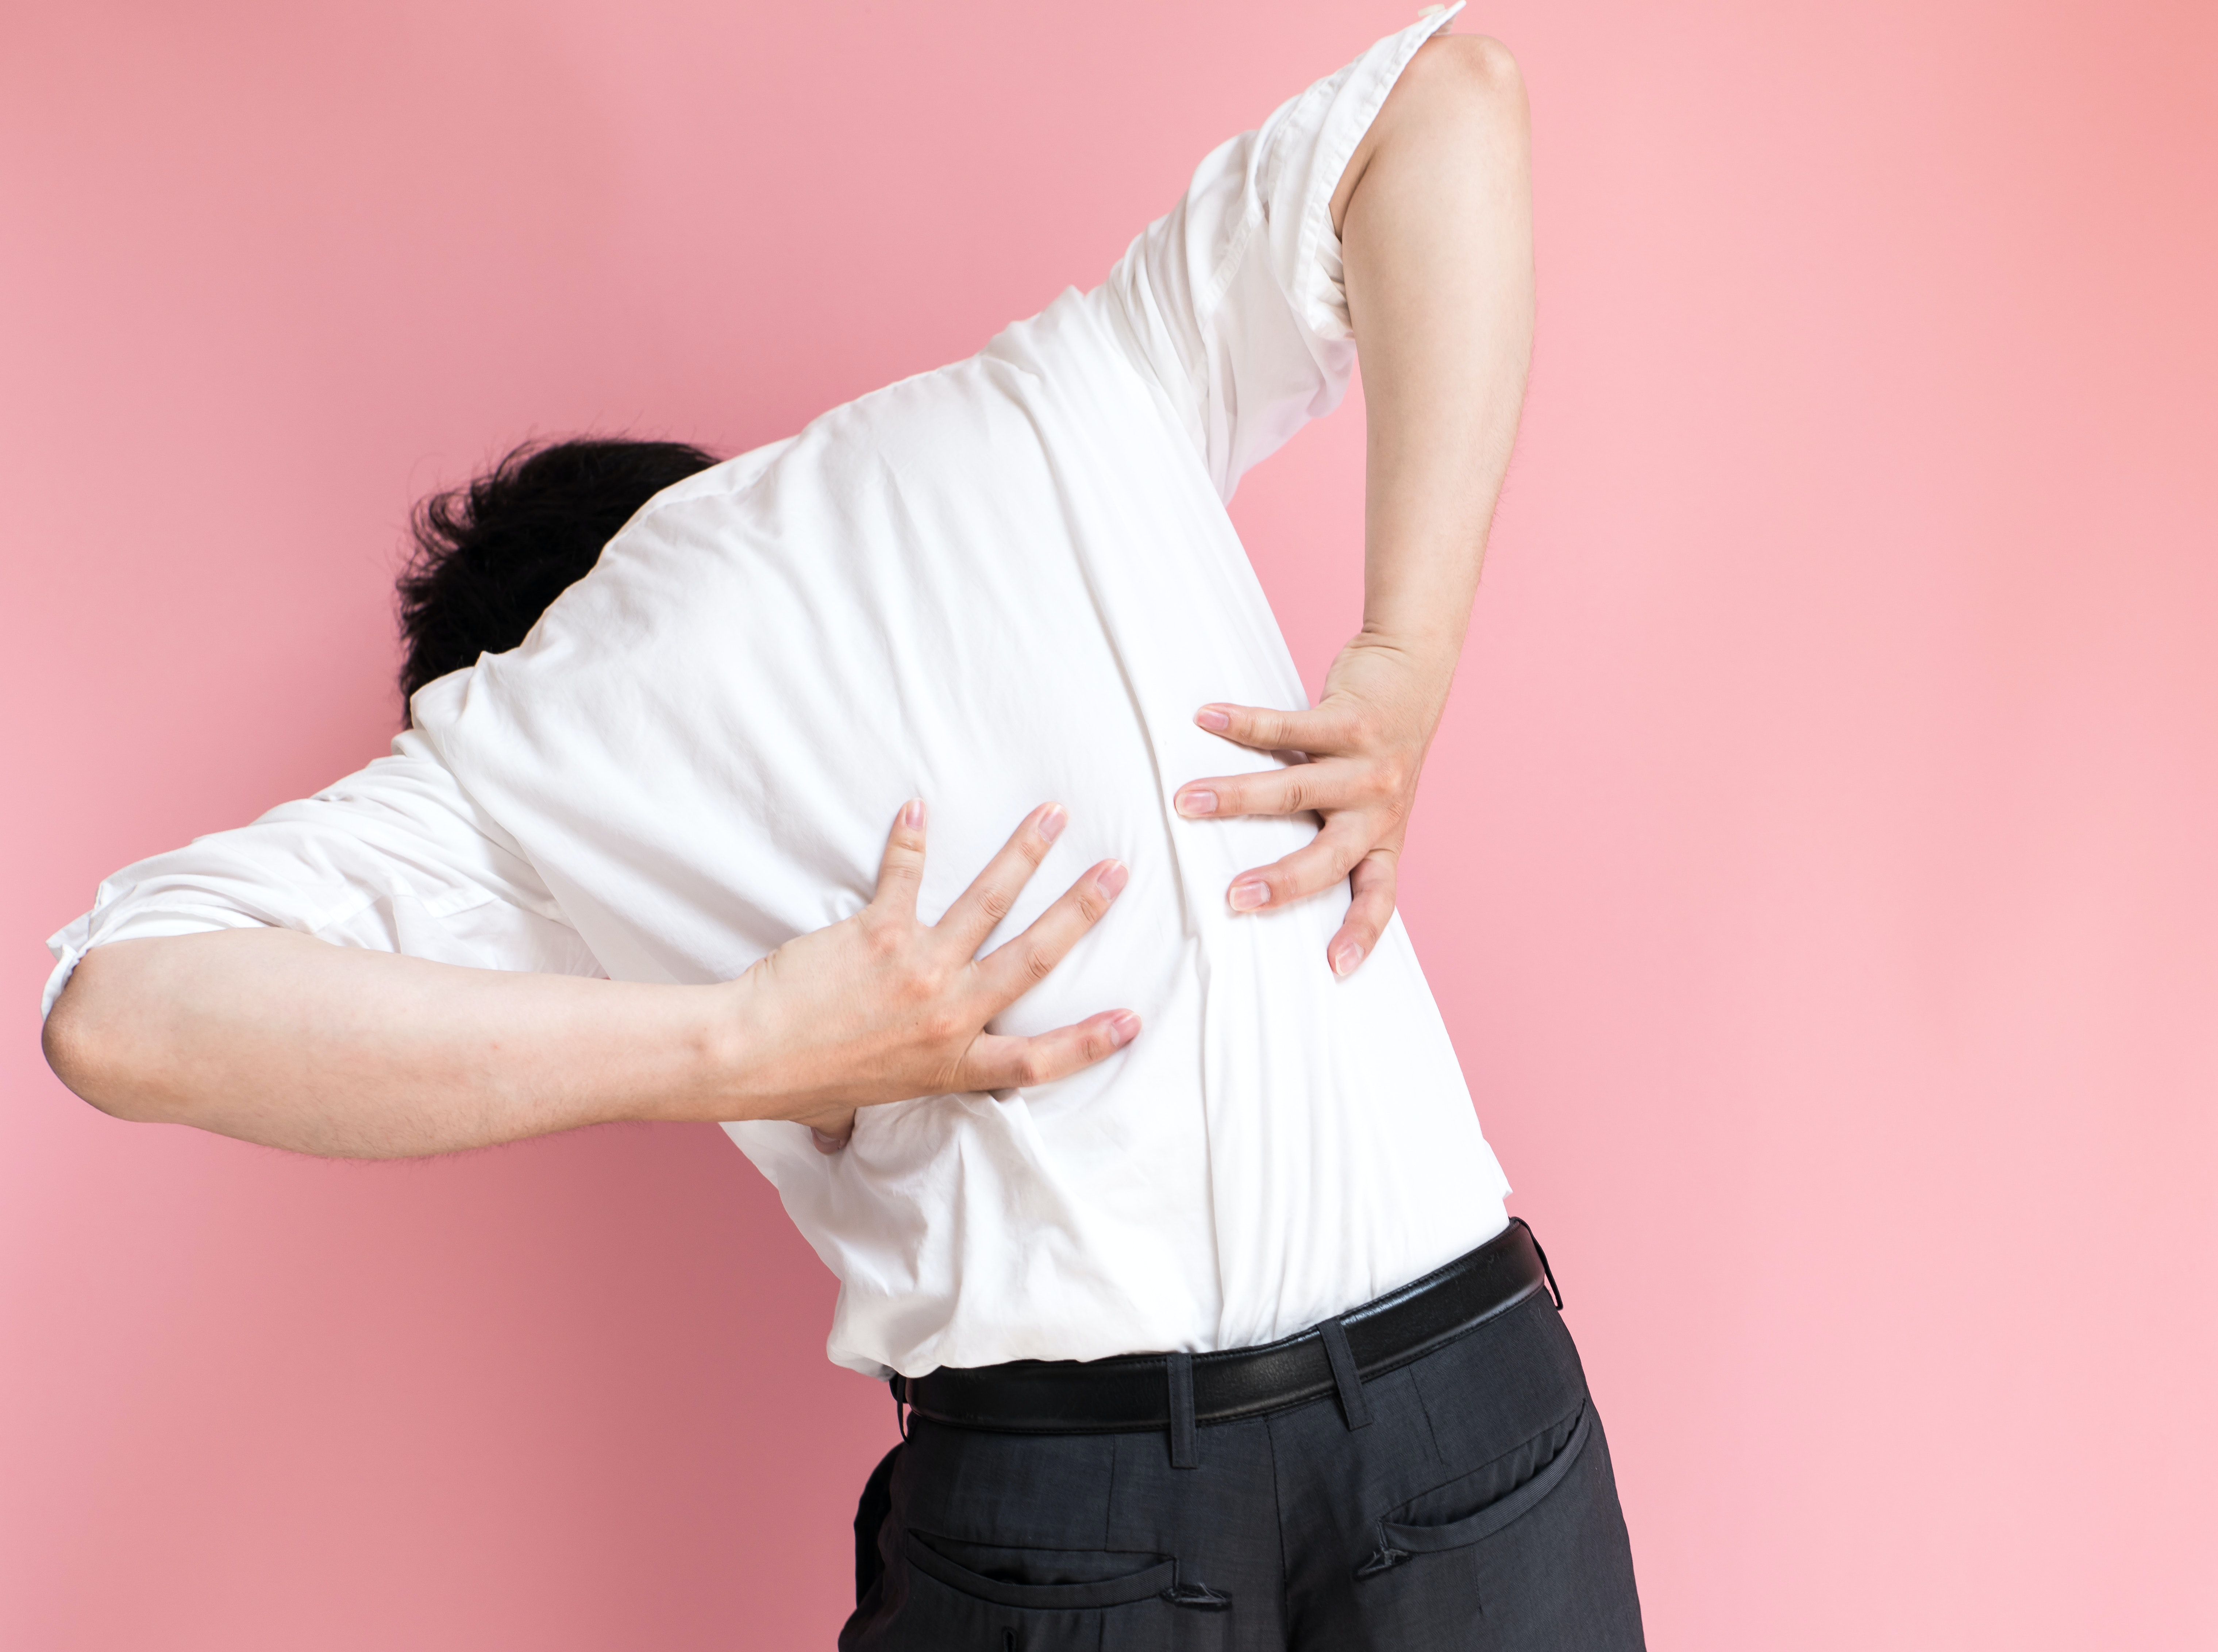 An image depicting a person suffering from back pain affecting the spine symptoms